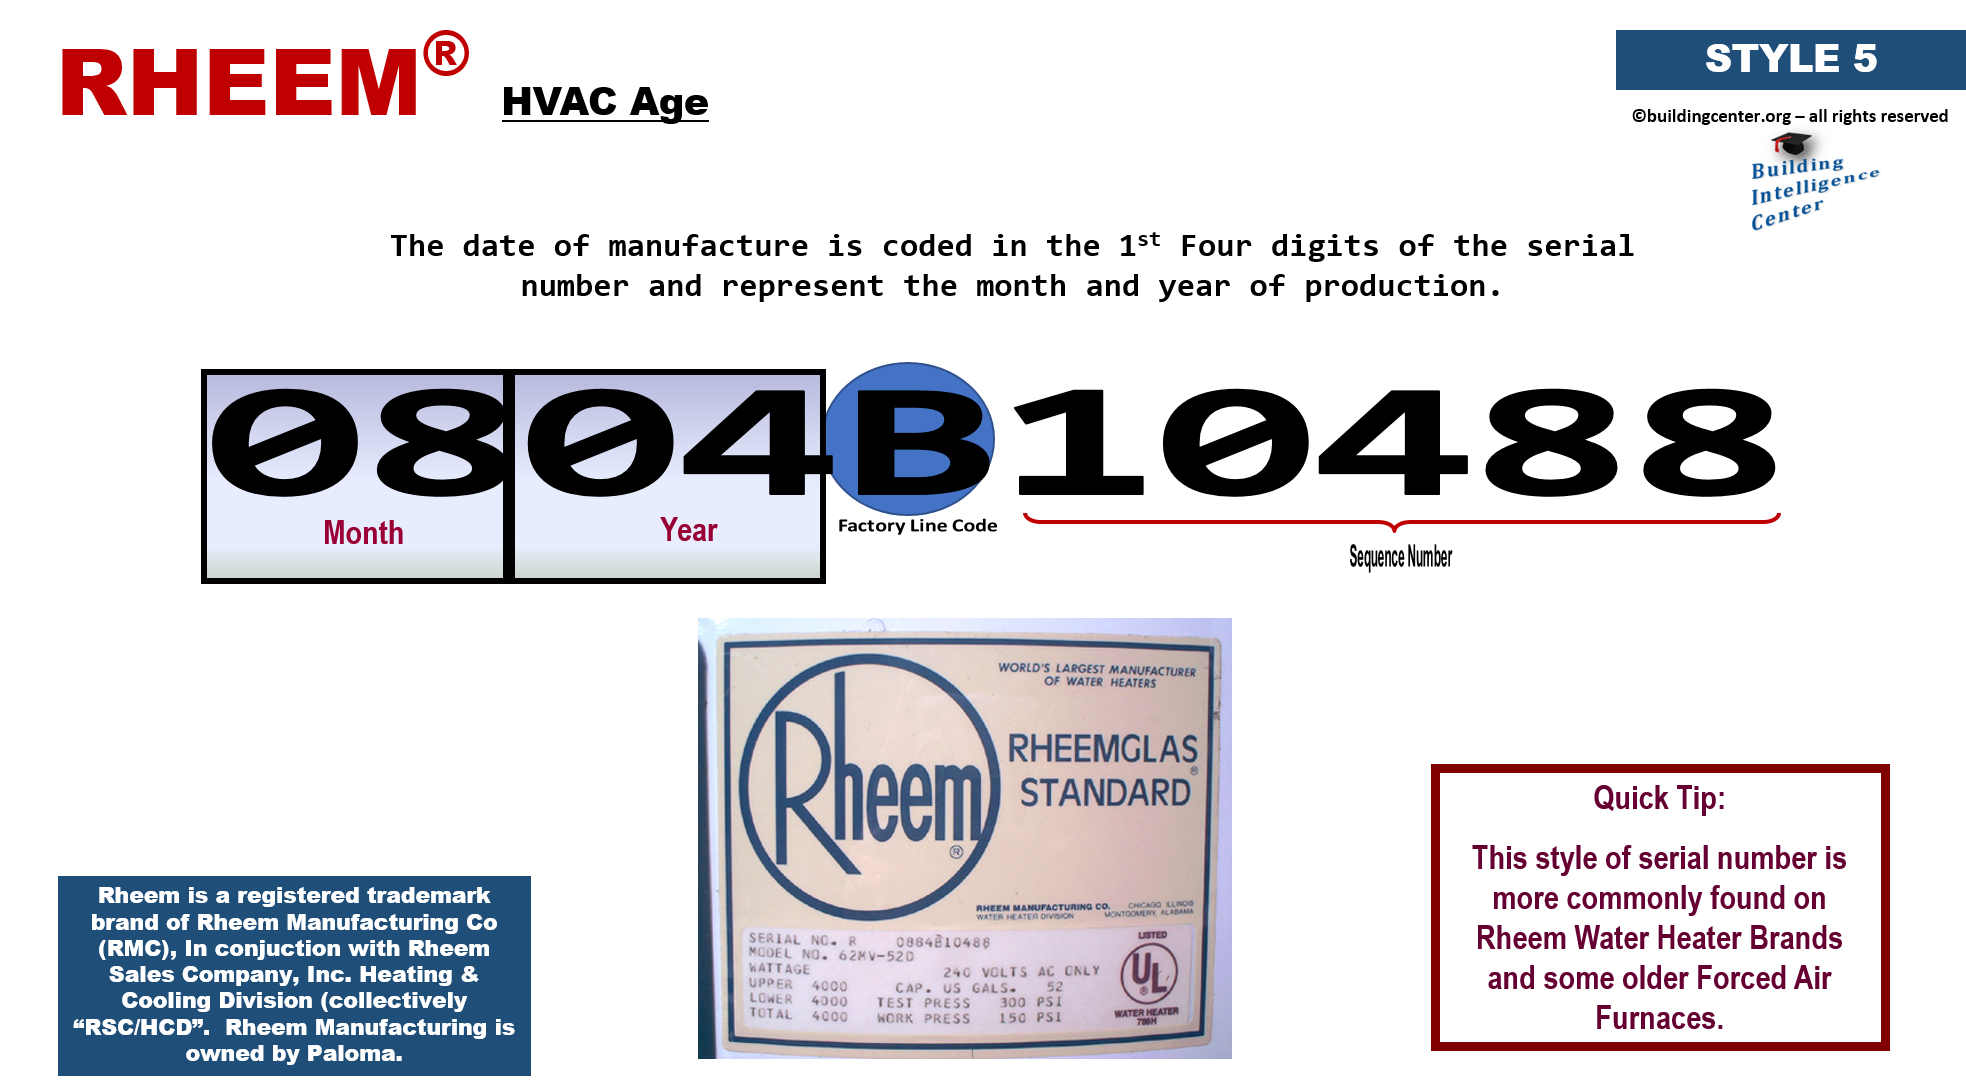 Rheem Hvac Age Building Intelligence Center Older Furnace Wiring Diagram Style 5 0804b10488